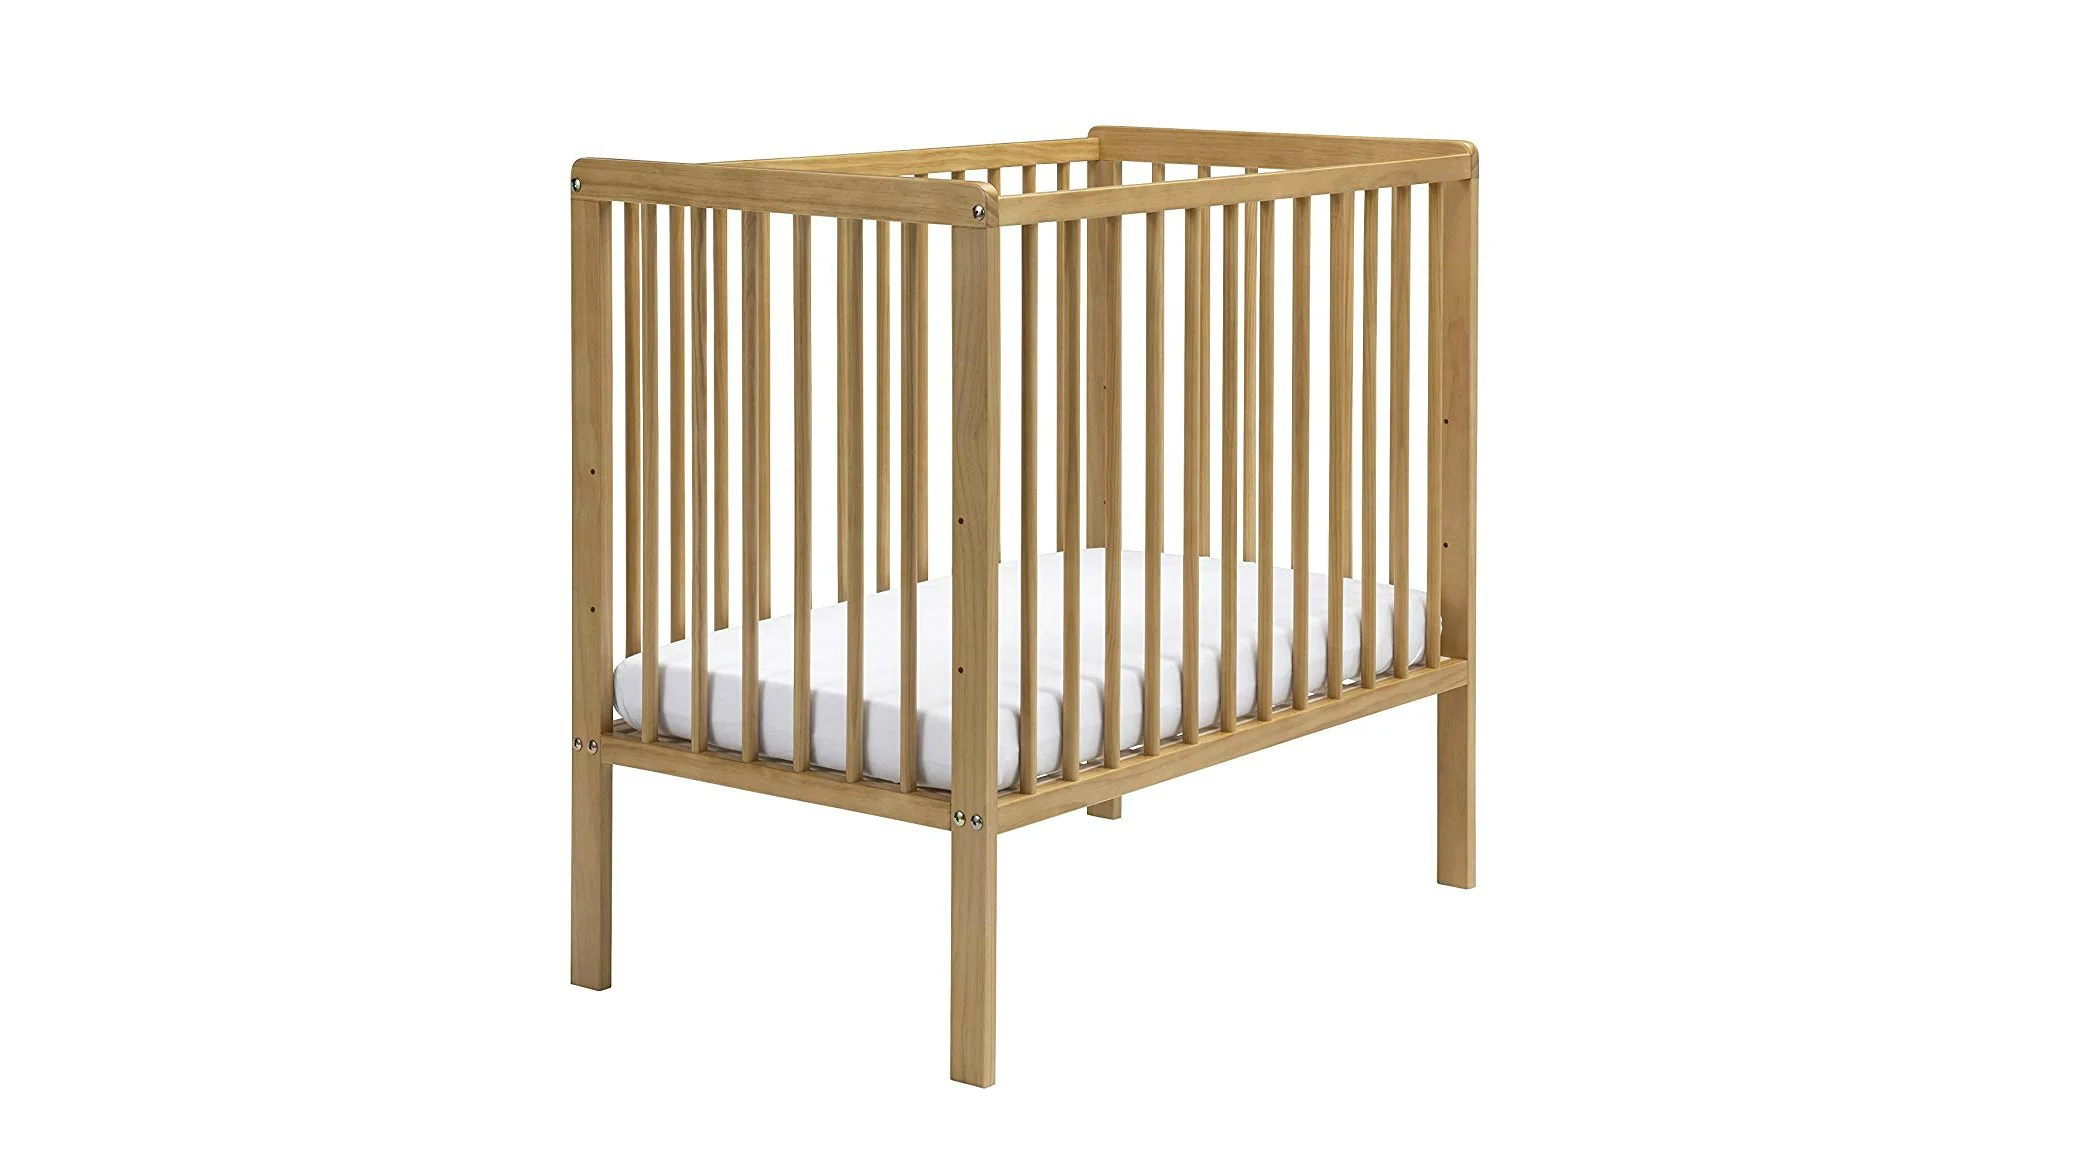 Best Bassinet For Older Babies Best Baby Cots 2018 Put Your Baby To Sleep In Safety And